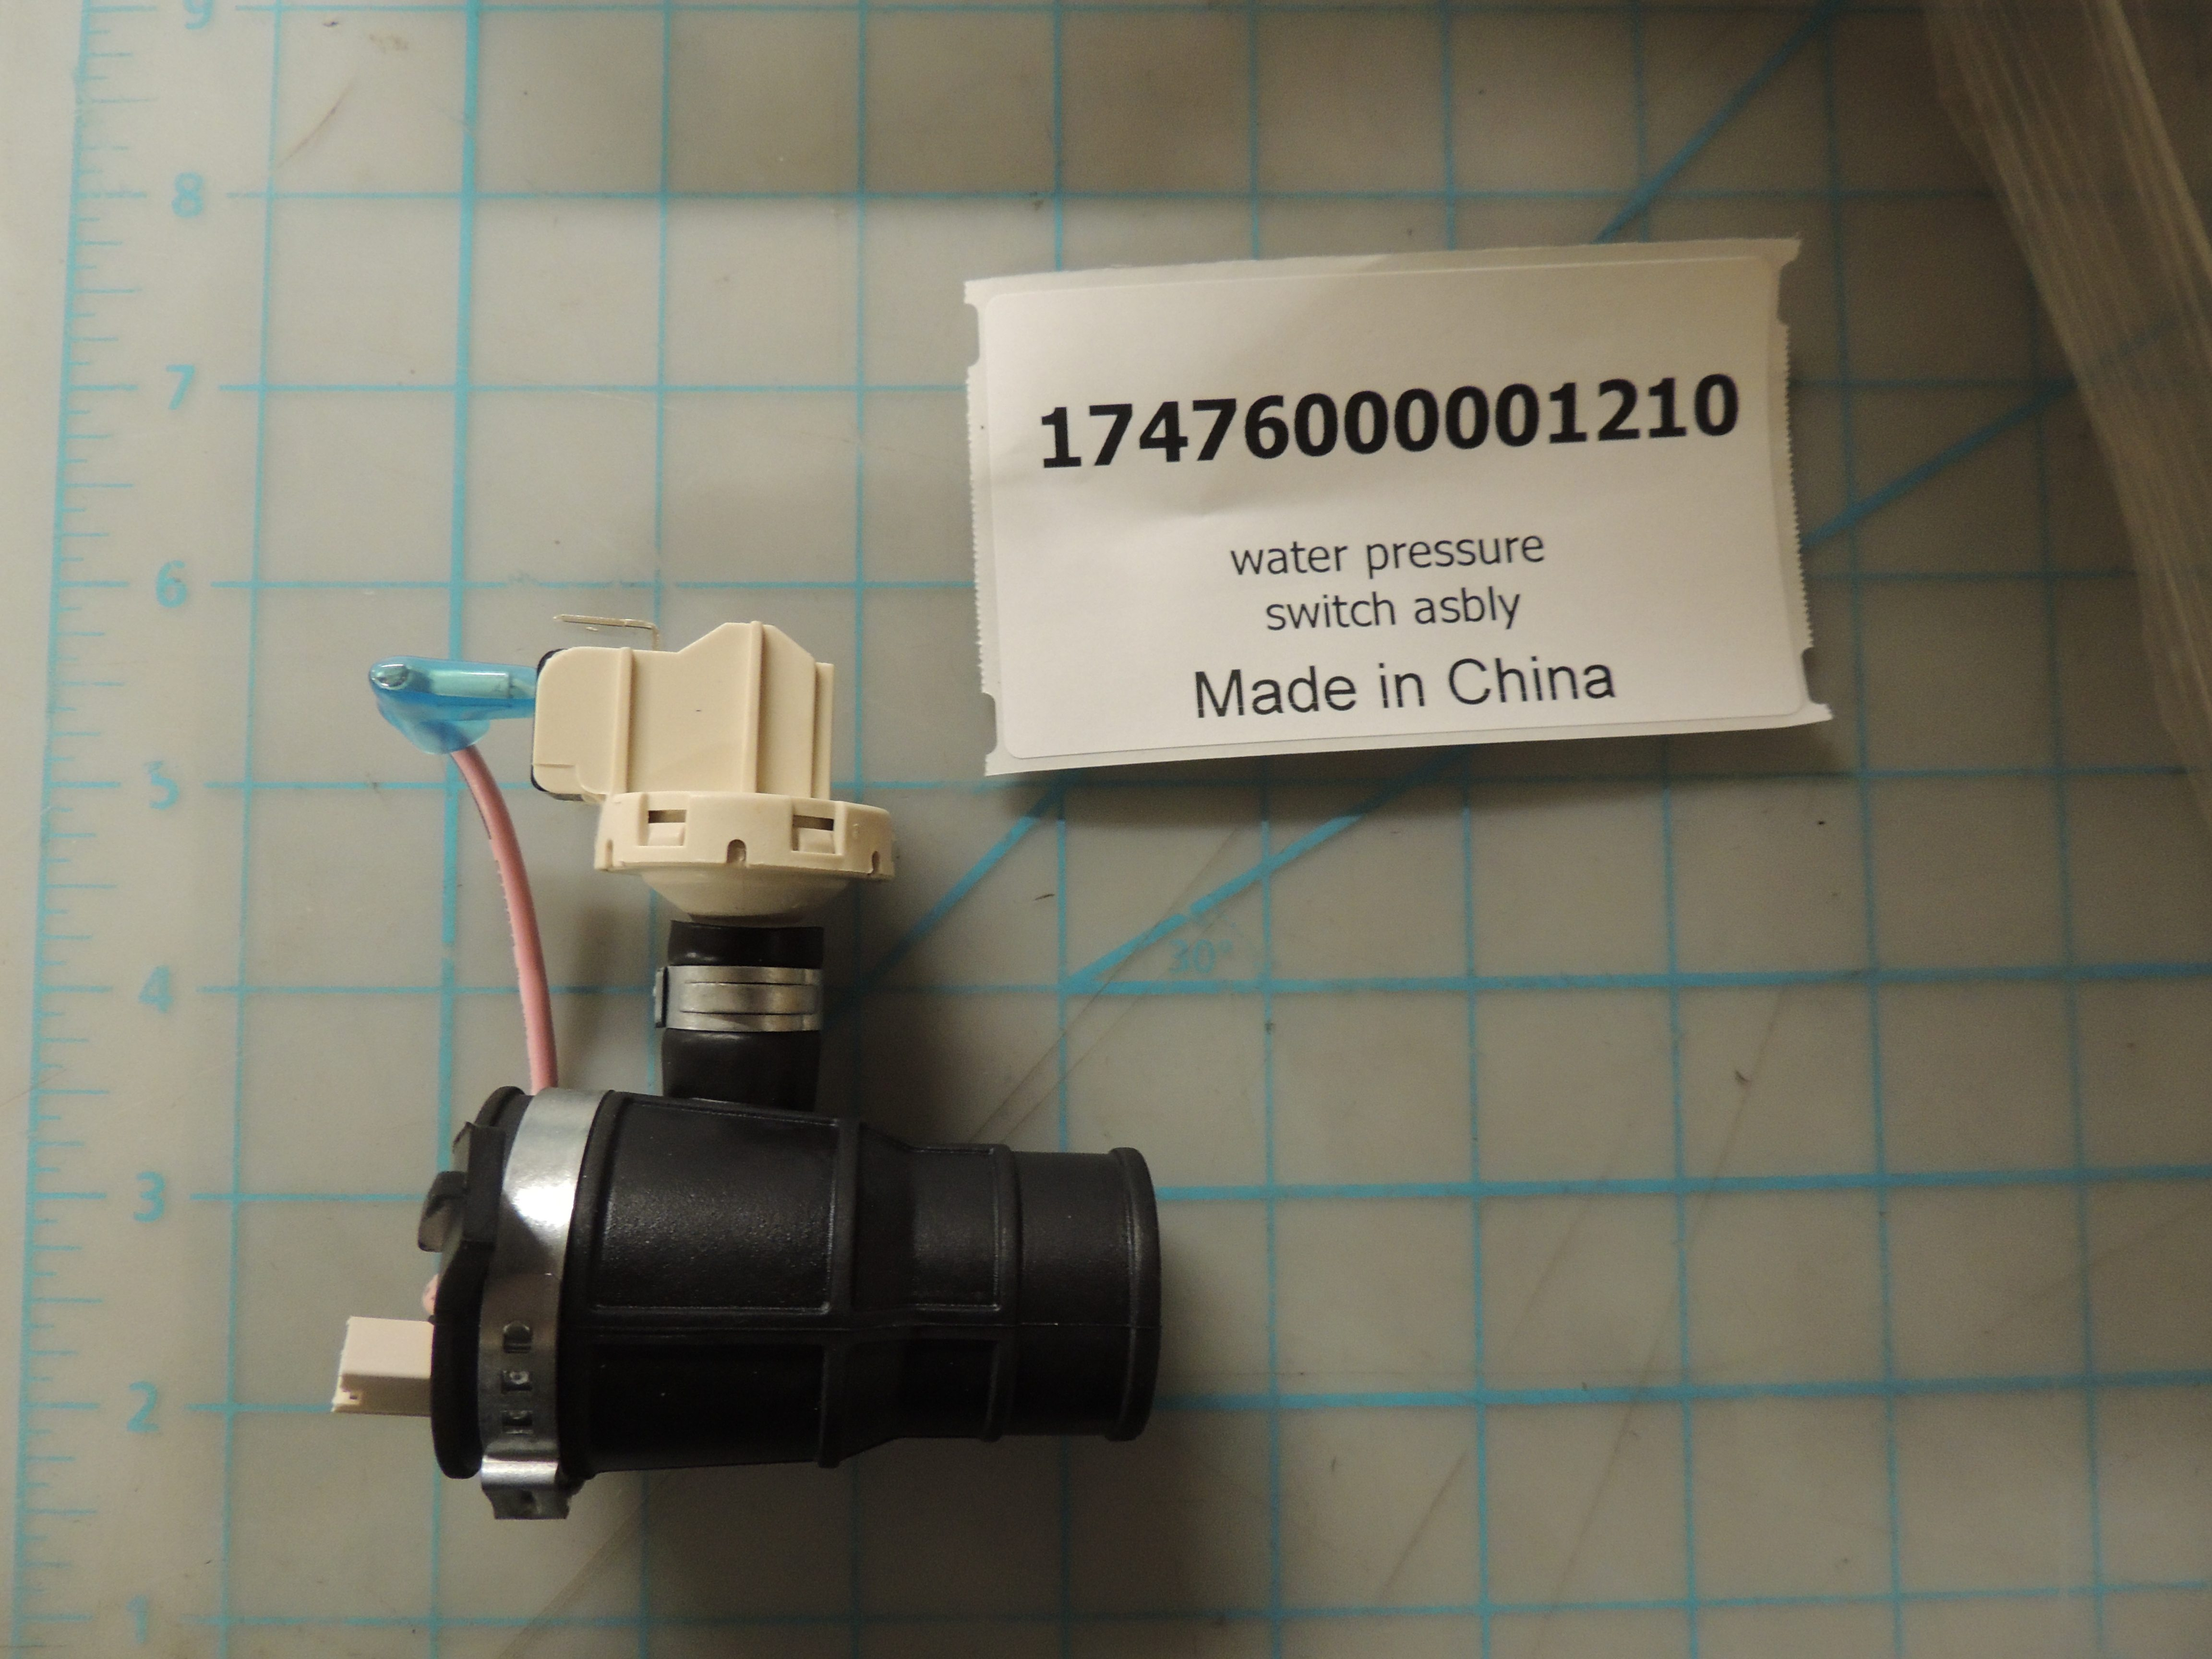 water pressure switch asbly